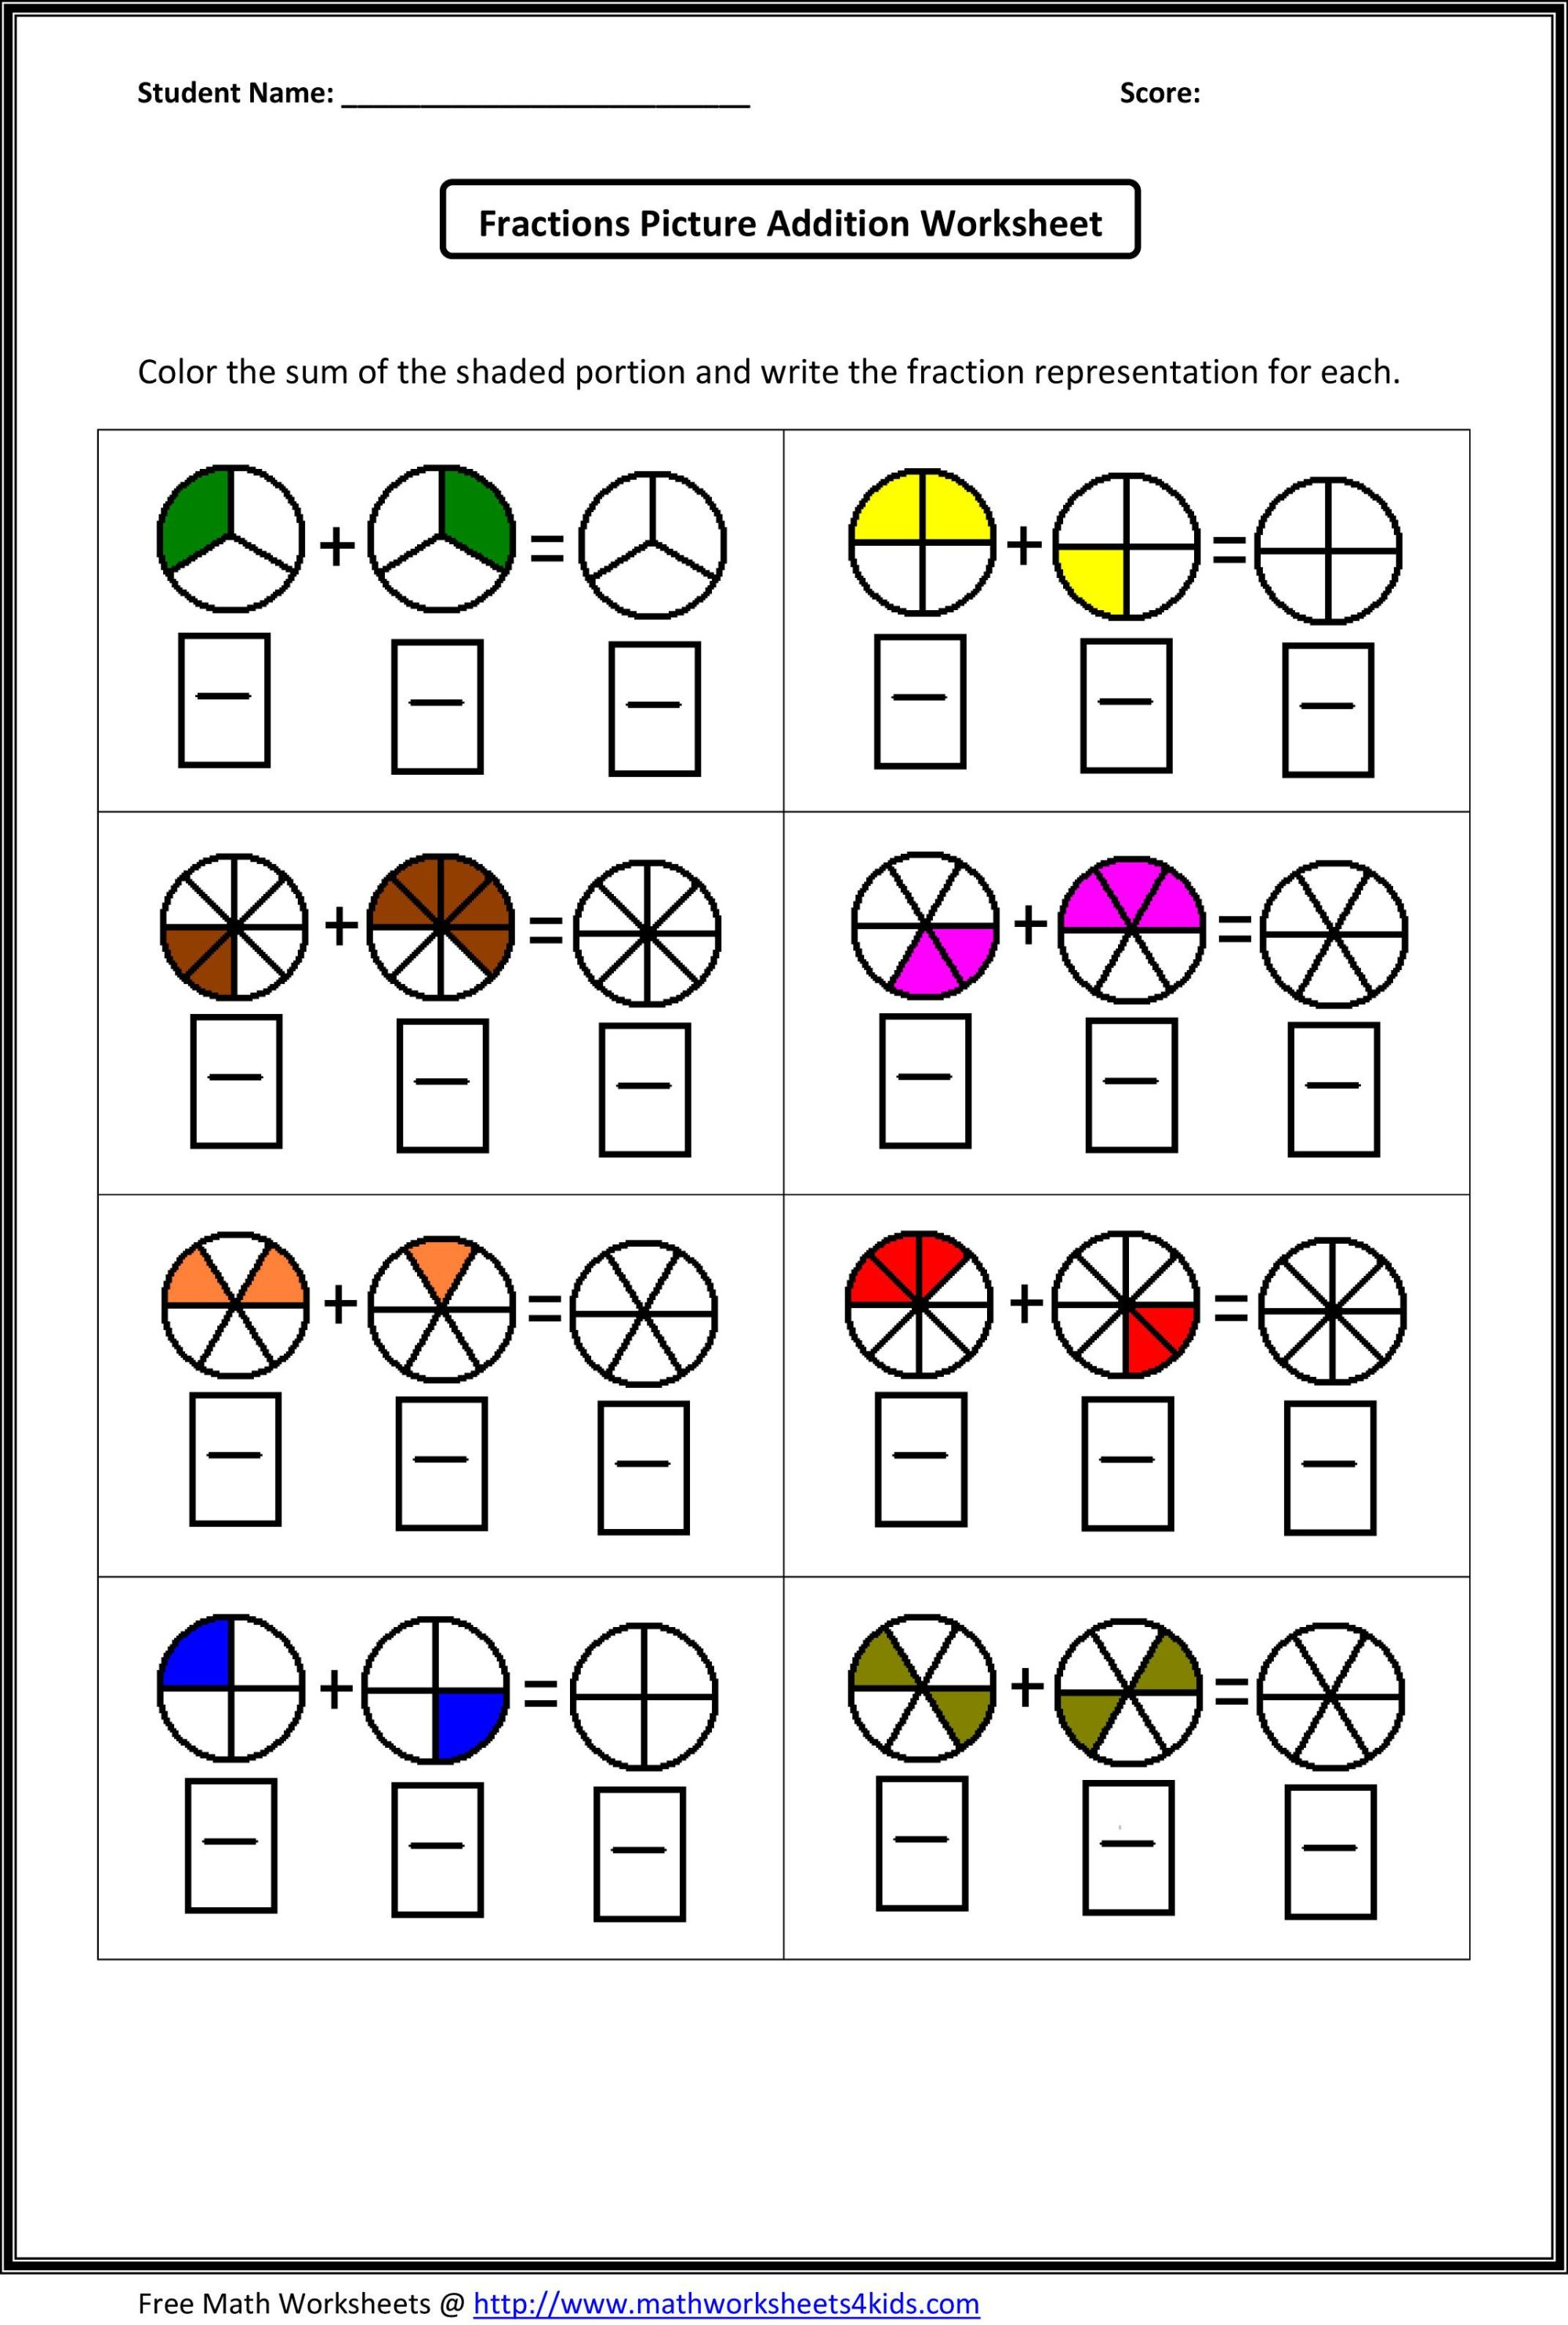 hight resolution of 20 Best Fractions Worksheets Grade 2 images on Best Worksheets Collection